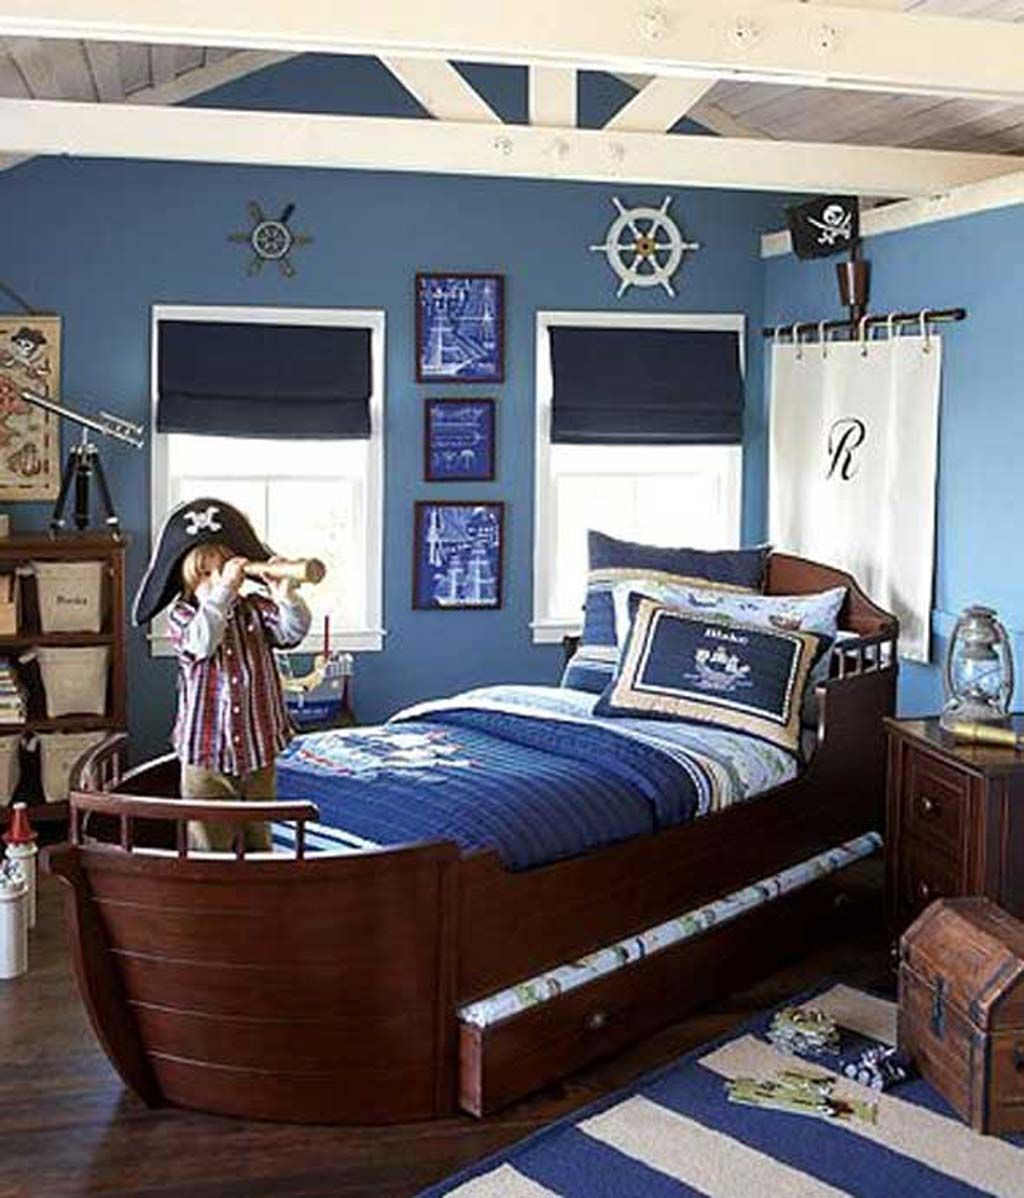 Pirate Bedroom Ideas 3, Photo Pirate Bedroom Ideas 3 Close Up View.